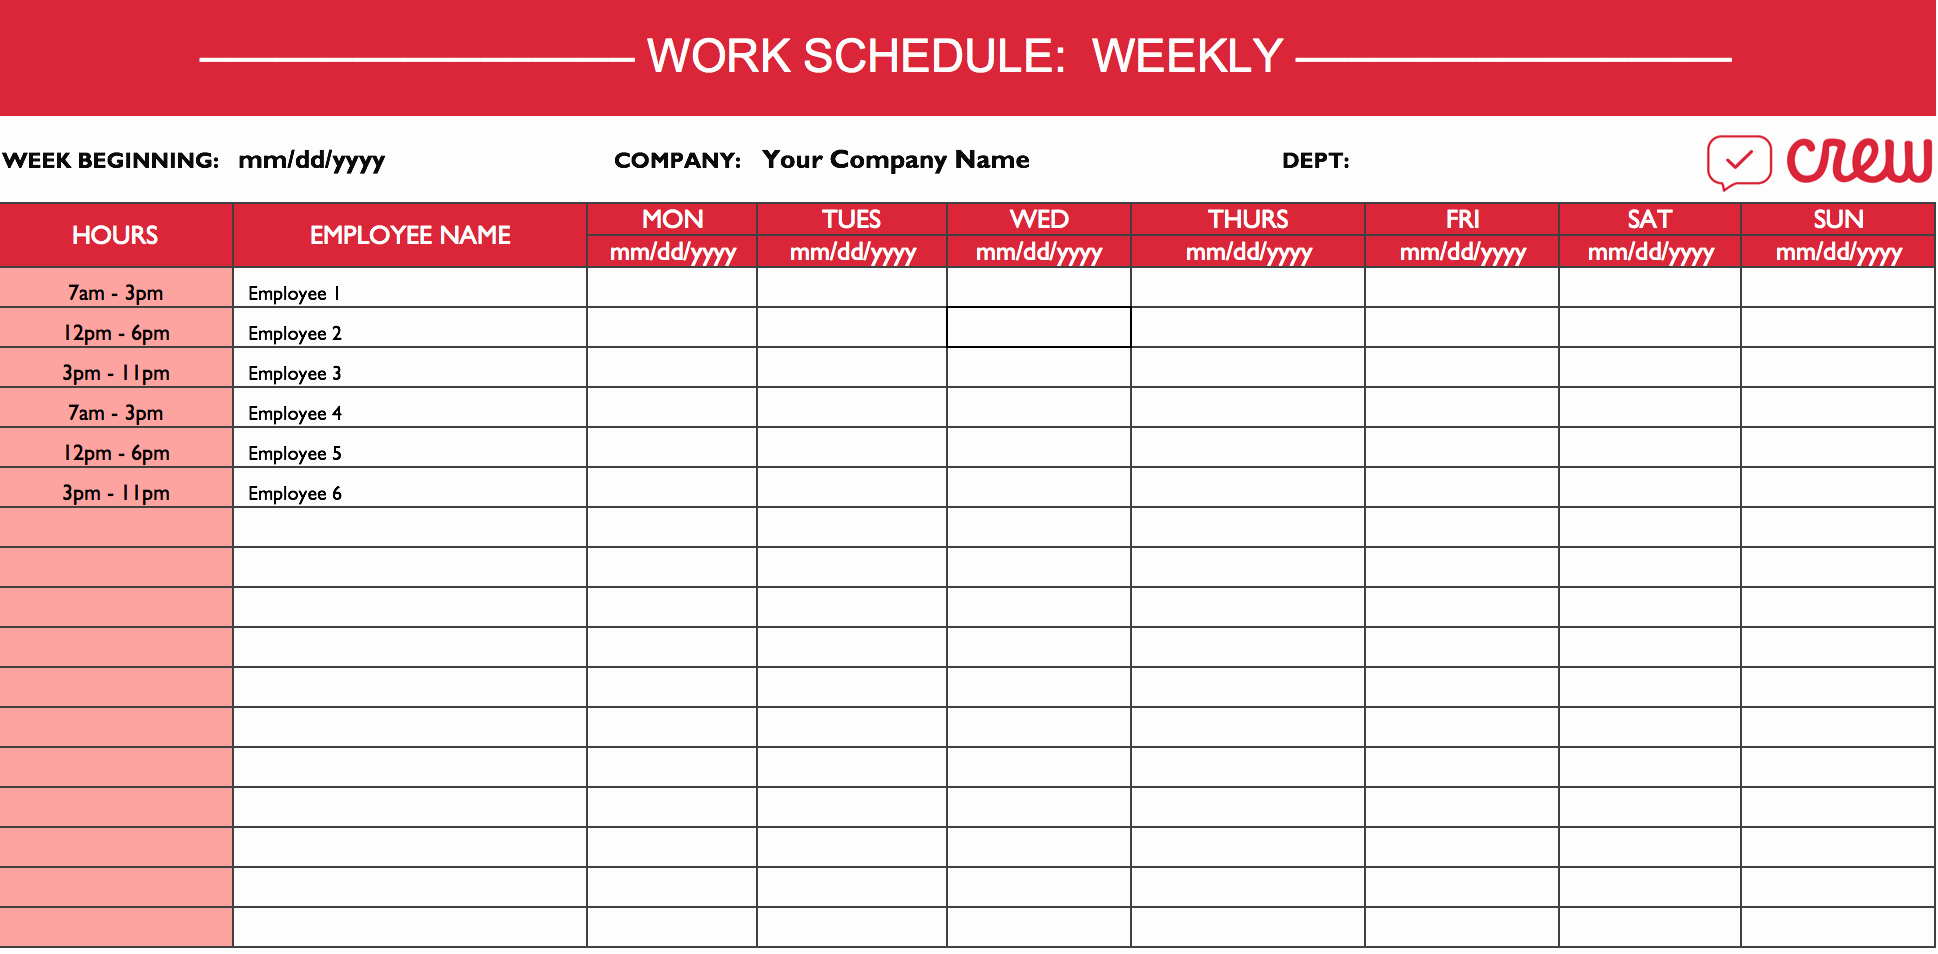 Work Schedule Template Weekly Best Of Weekly Work Schedule Template I Crew